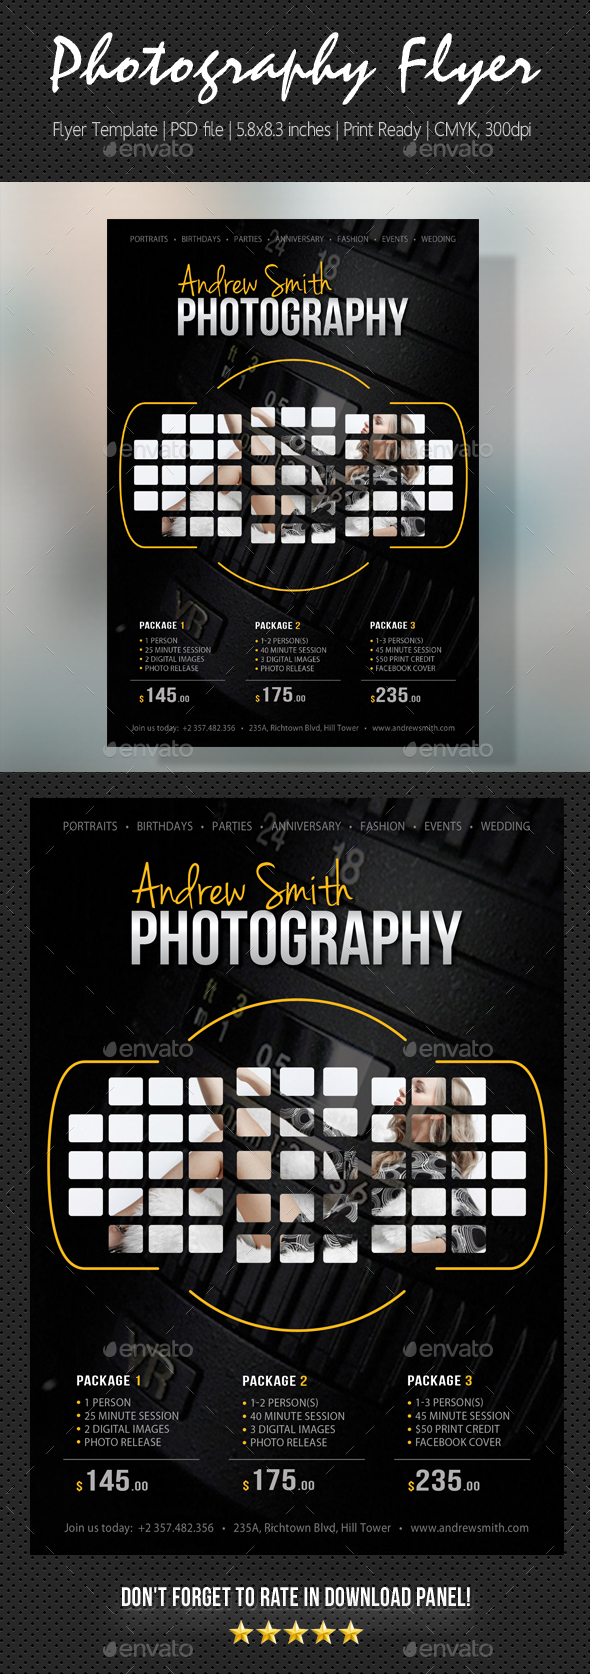 Photography Studio Flyer 21 - Flyers Print Templates